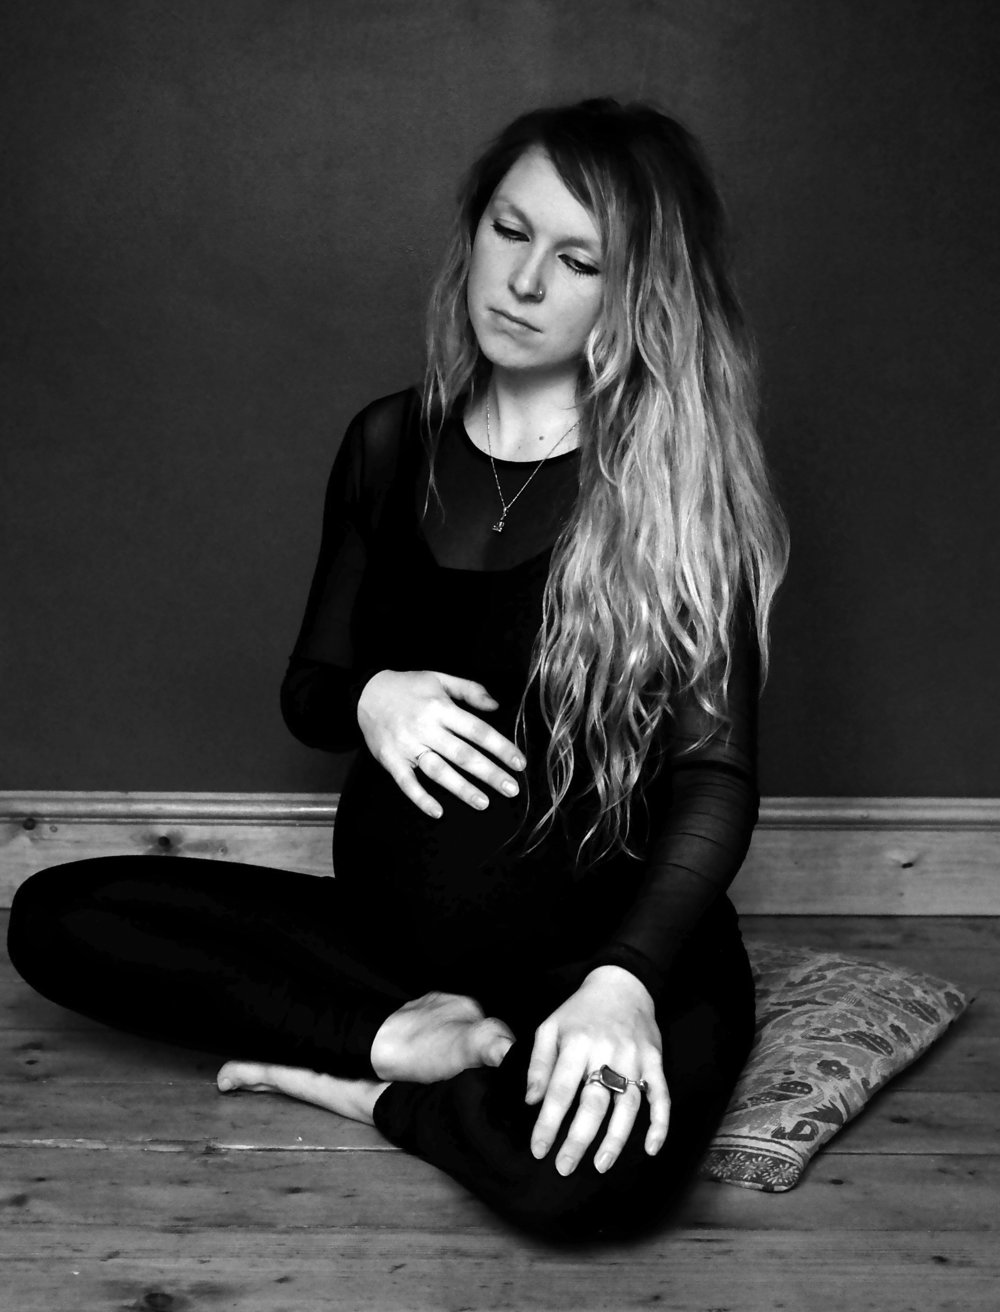 LUCY YOGA_53 b and w.jpg